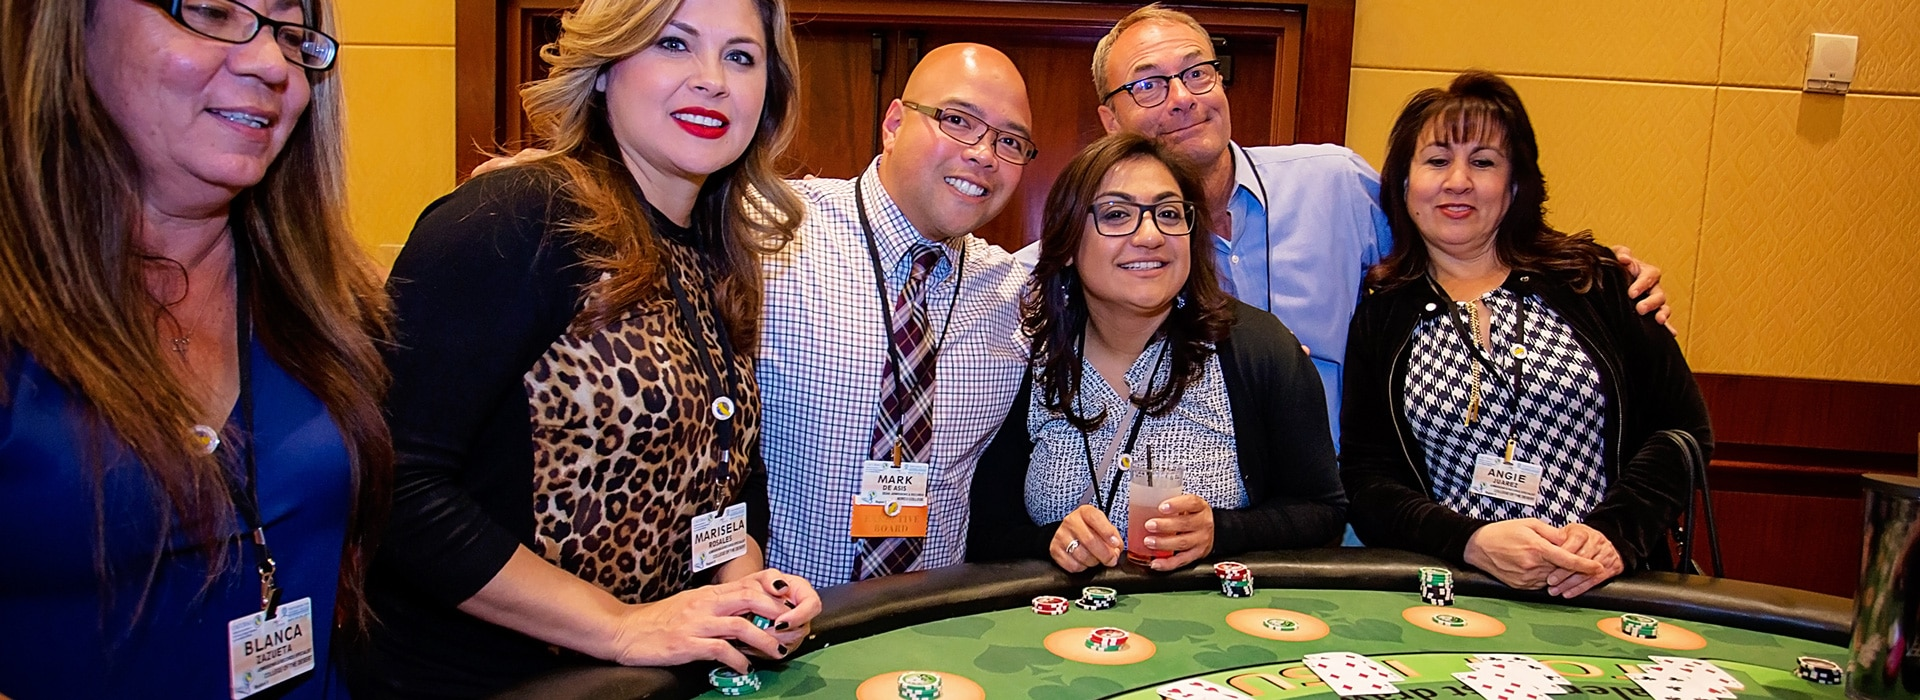 Playing Blackjack Company Event